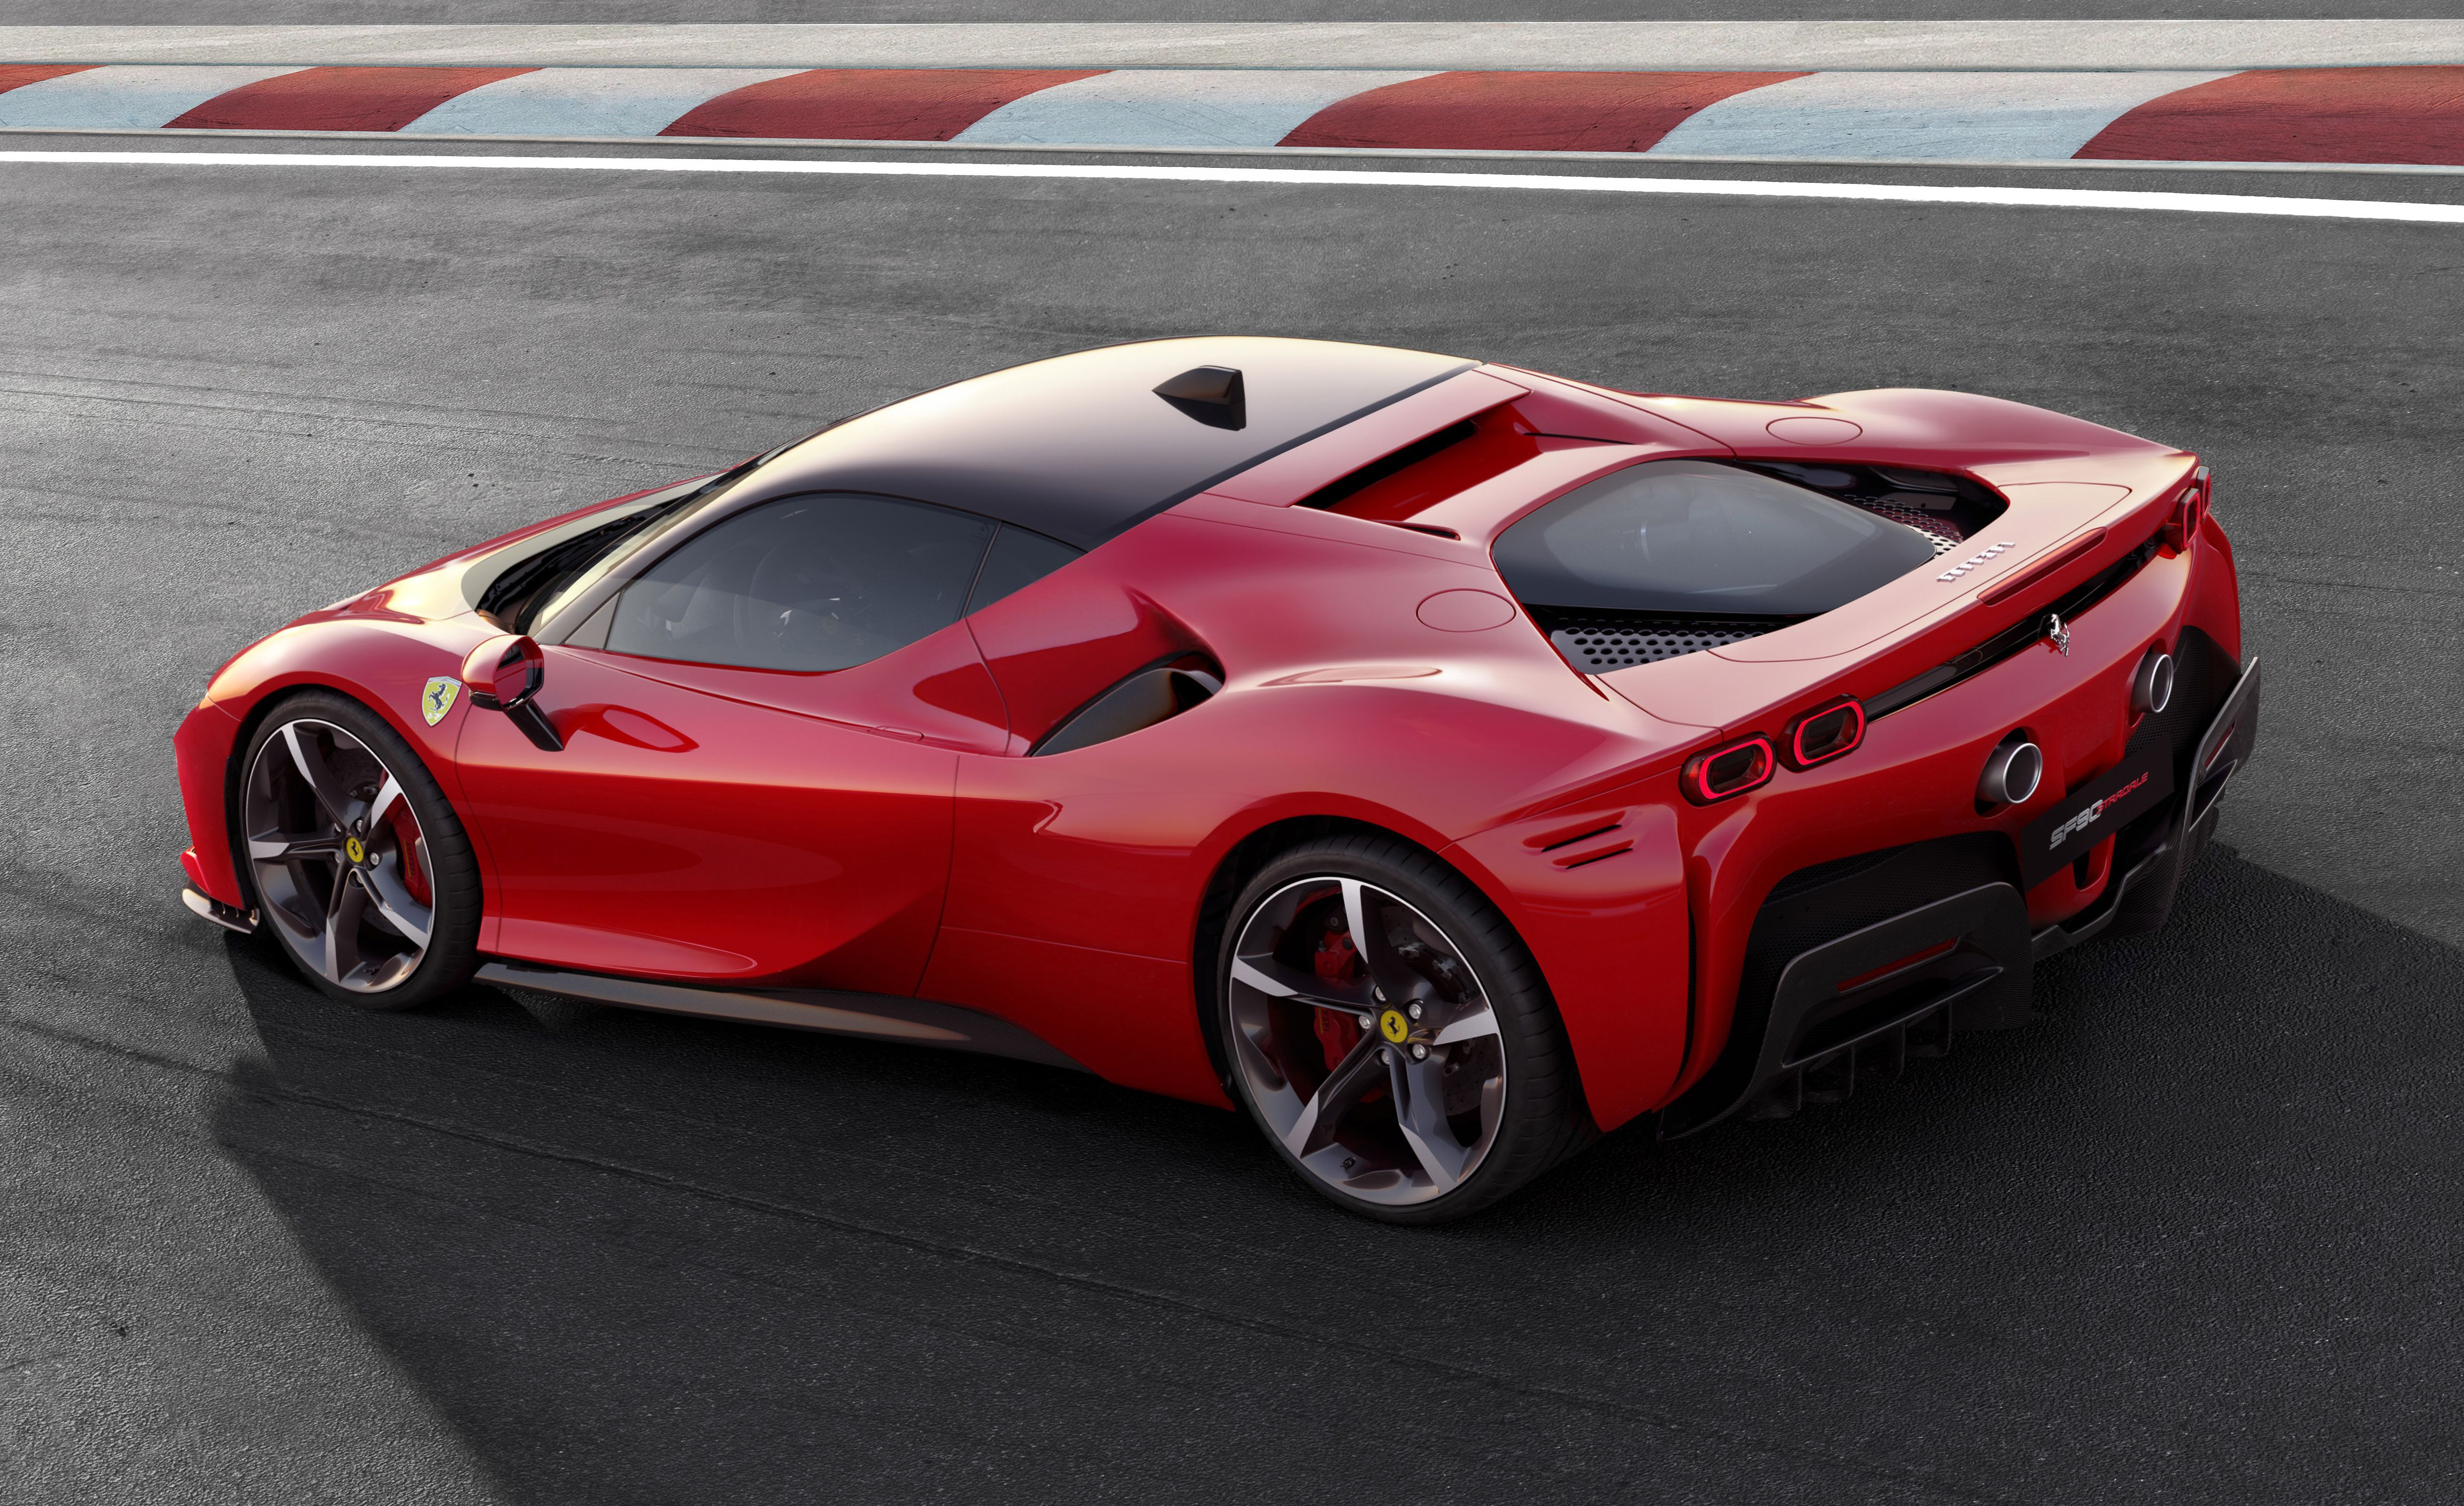 View Photos Of The New Ferrari Sf90 Stradale Super Cars New